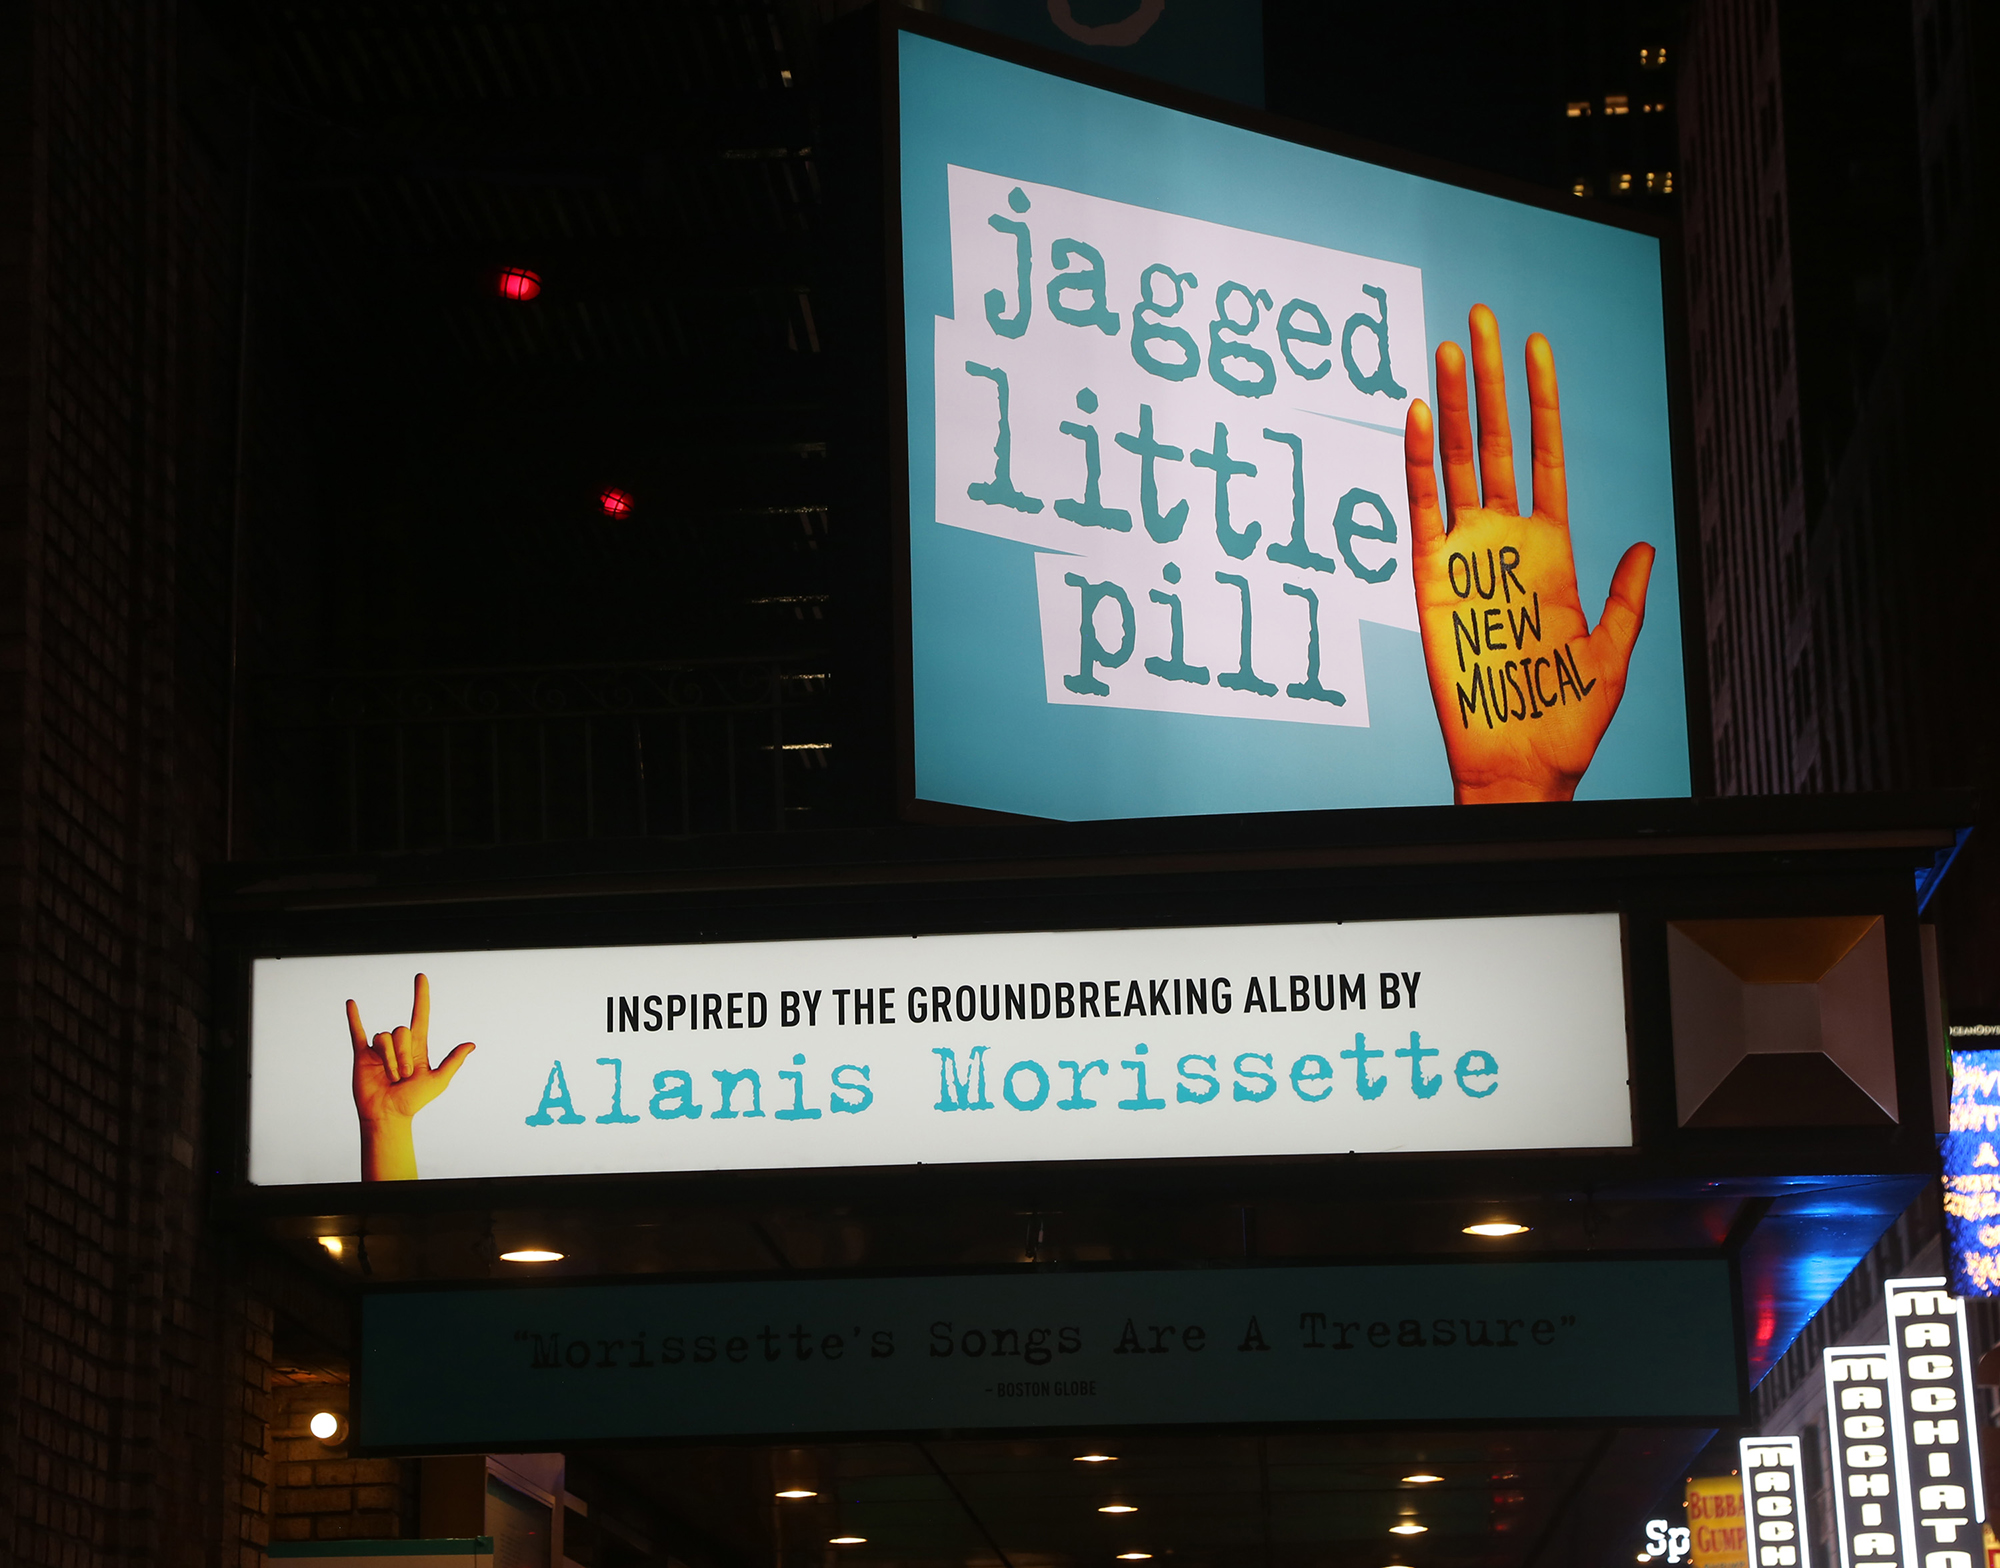 Patrons were evacuated from 'Jagged Little Pill' on Broadway after a likely pepper spray incident, police say